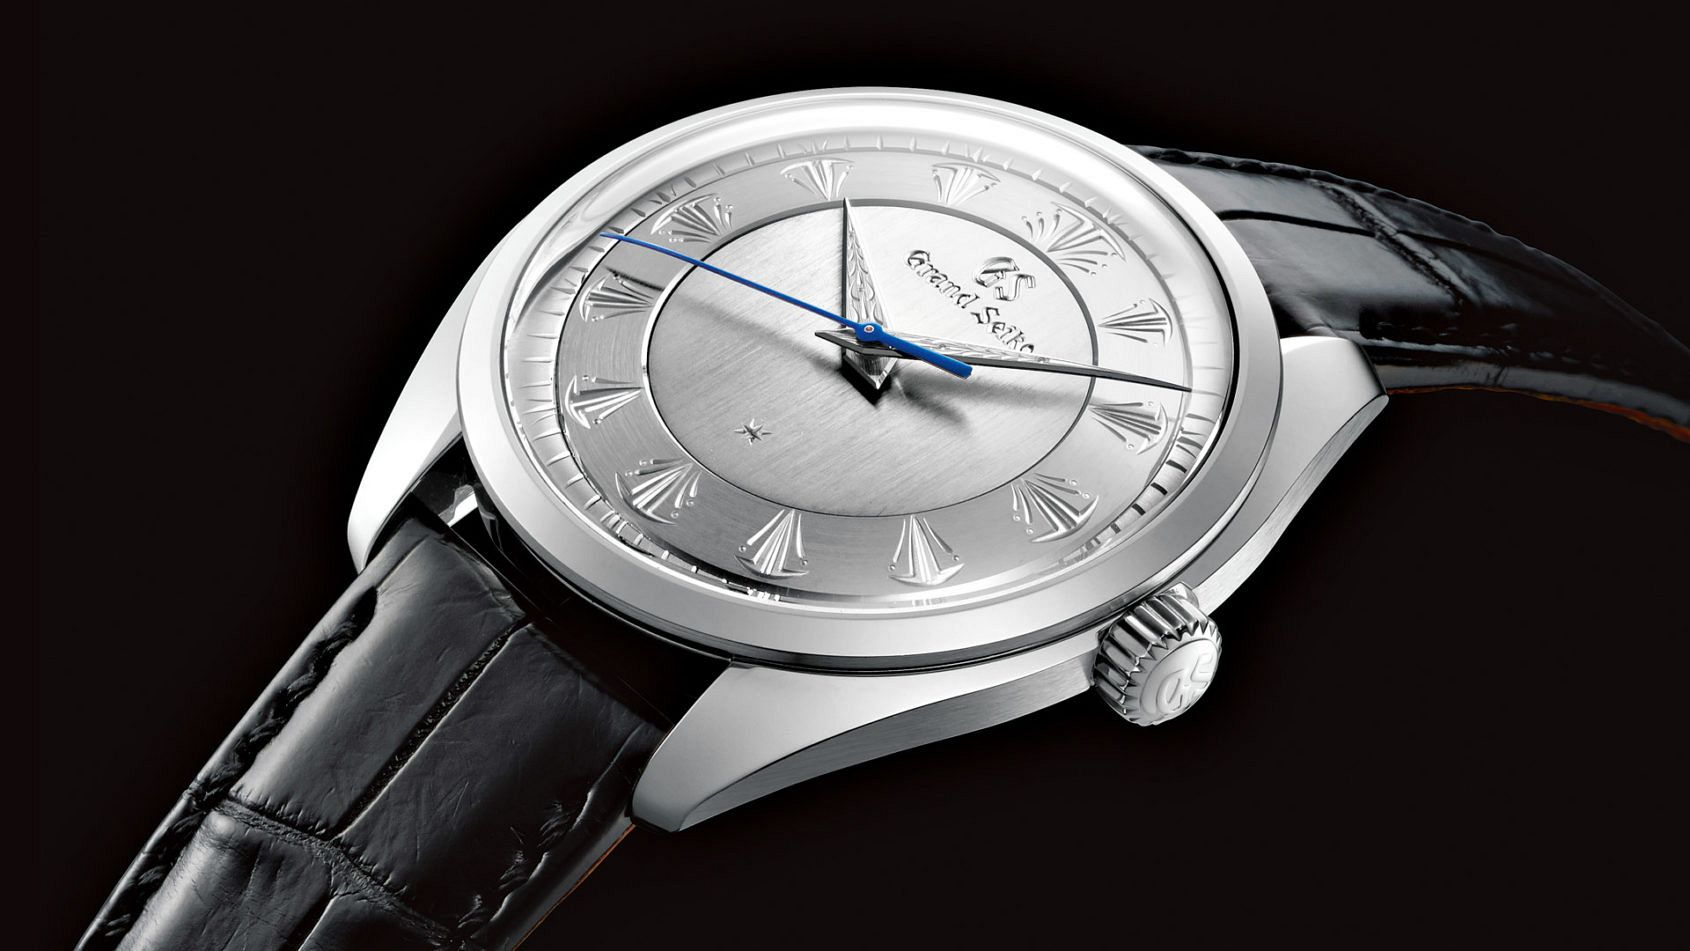 8 of the best dress watches of 2020 over $10K, featuring Grand Seiko, Cartier and Jaeger-LeCoultre